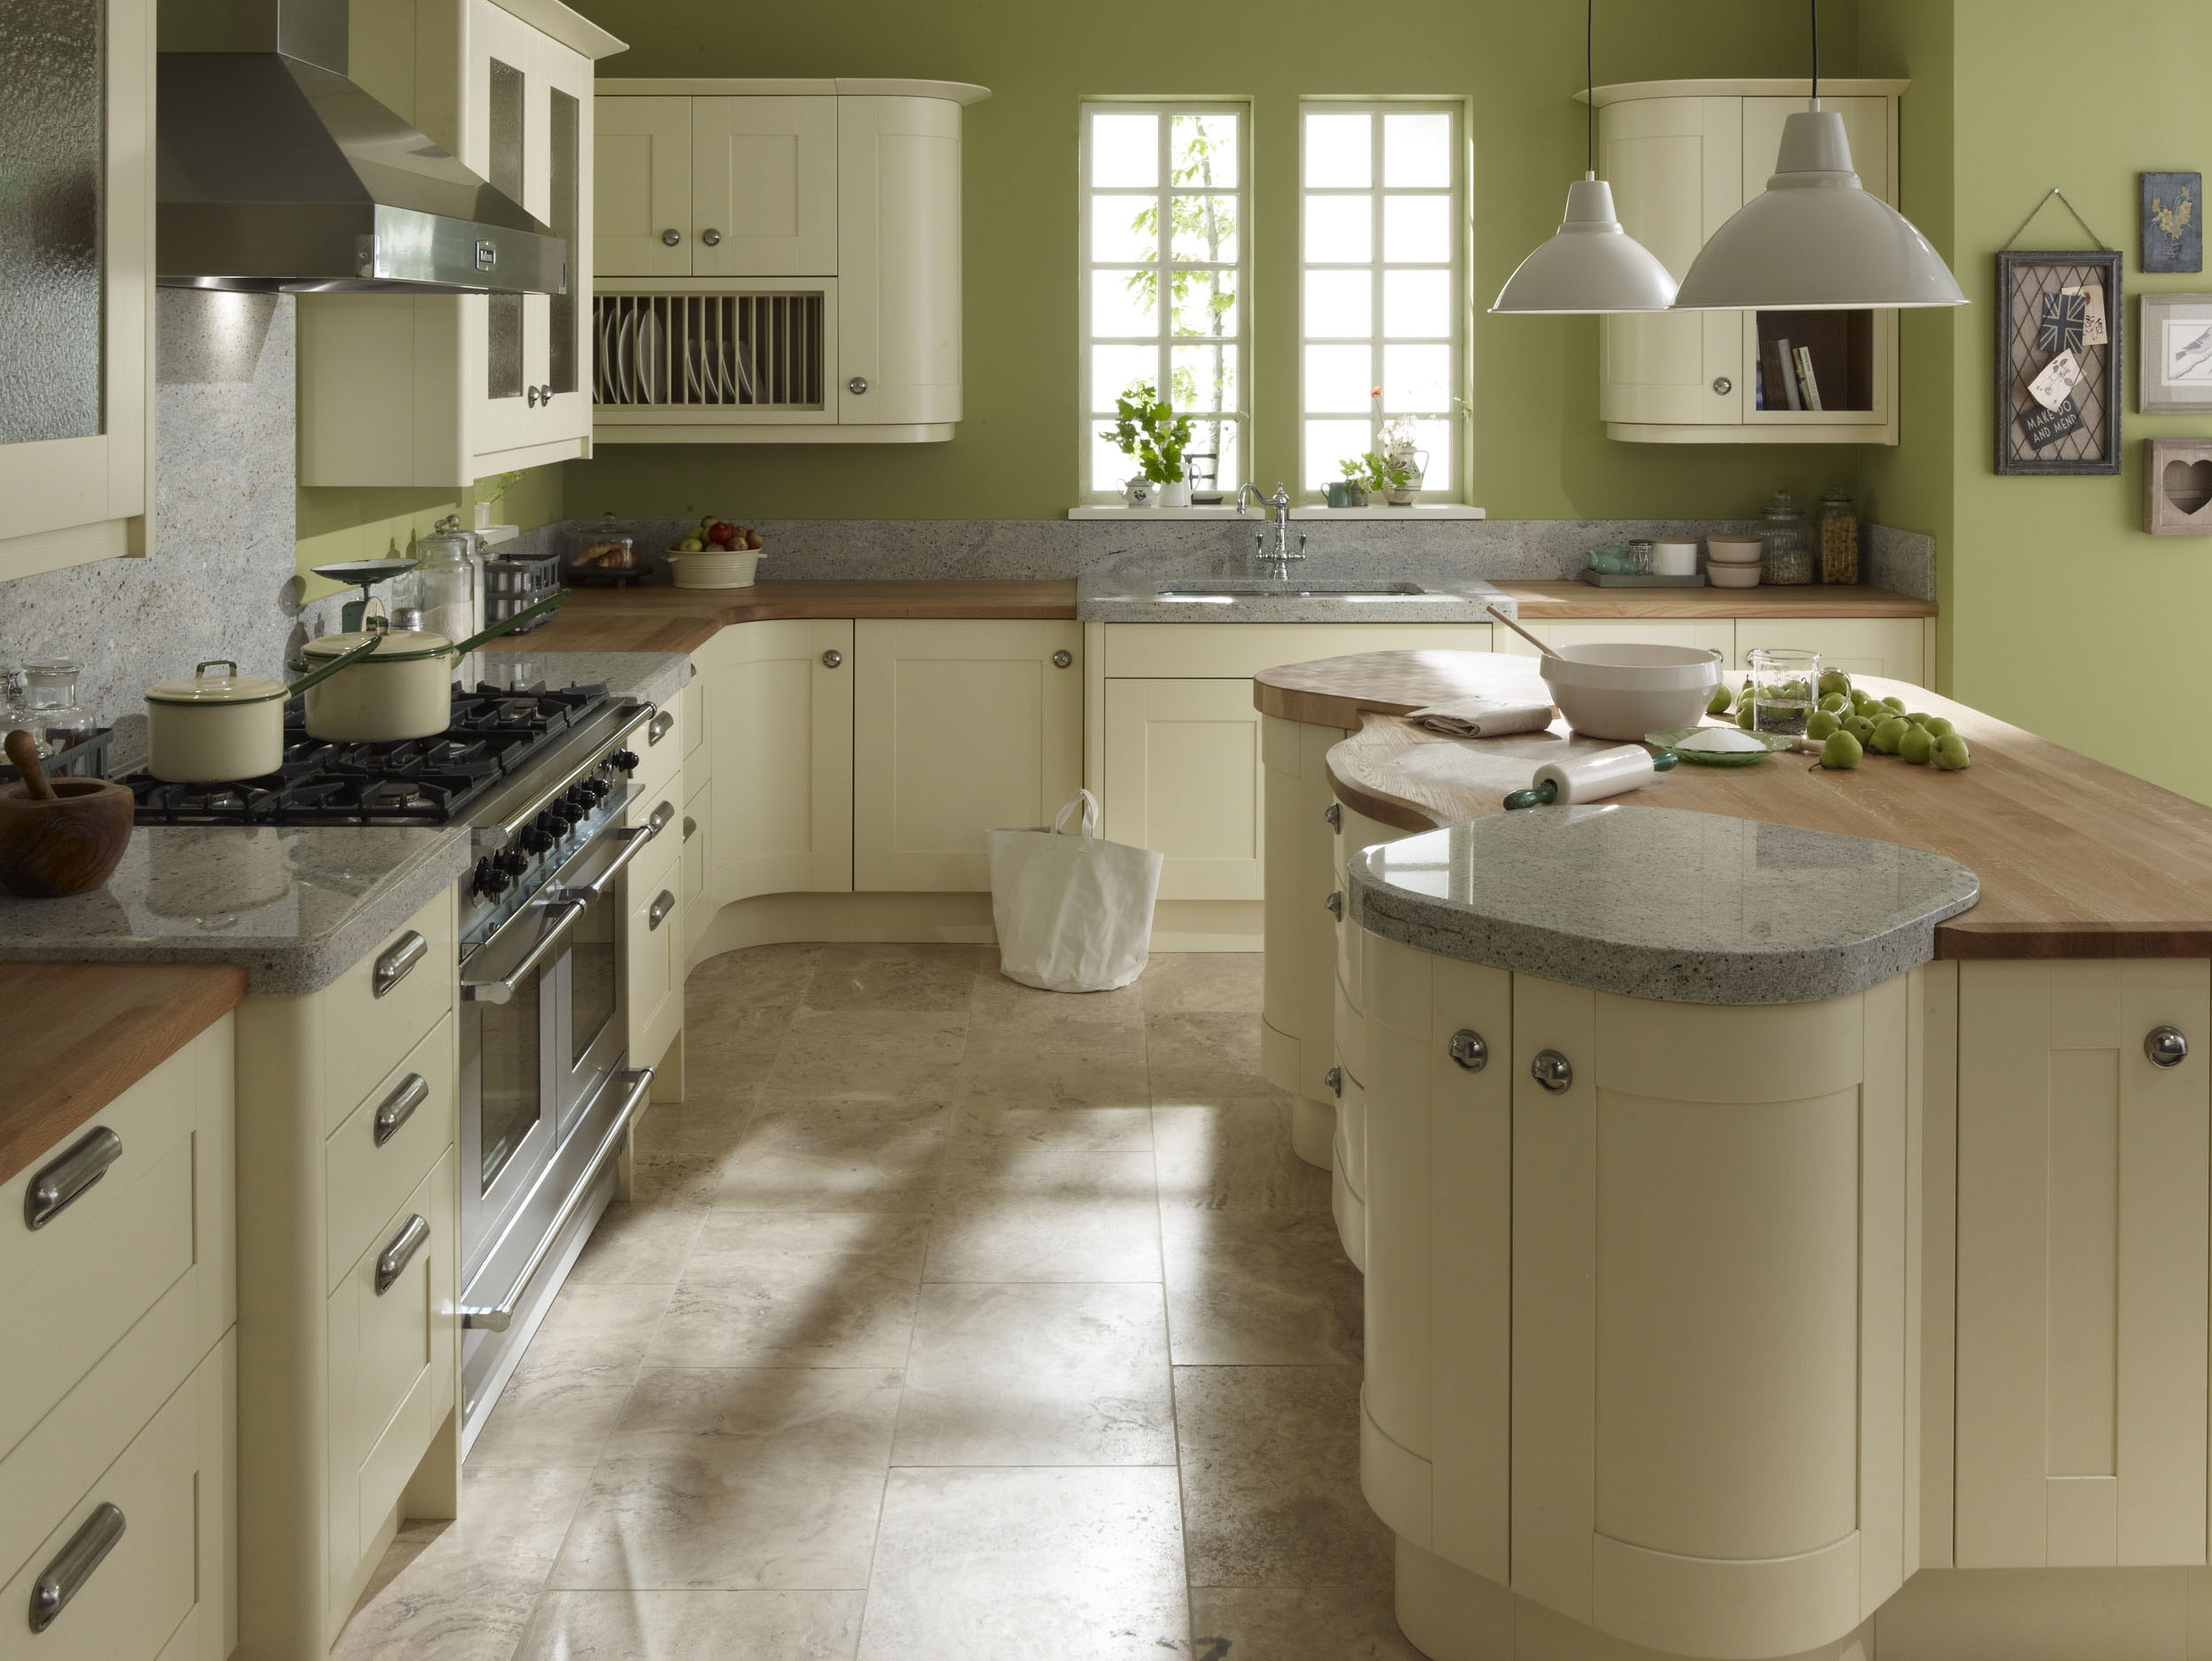 Broadoak ivory from eaton kitchen designs wolverhampton for Oak kitchen ideas designs